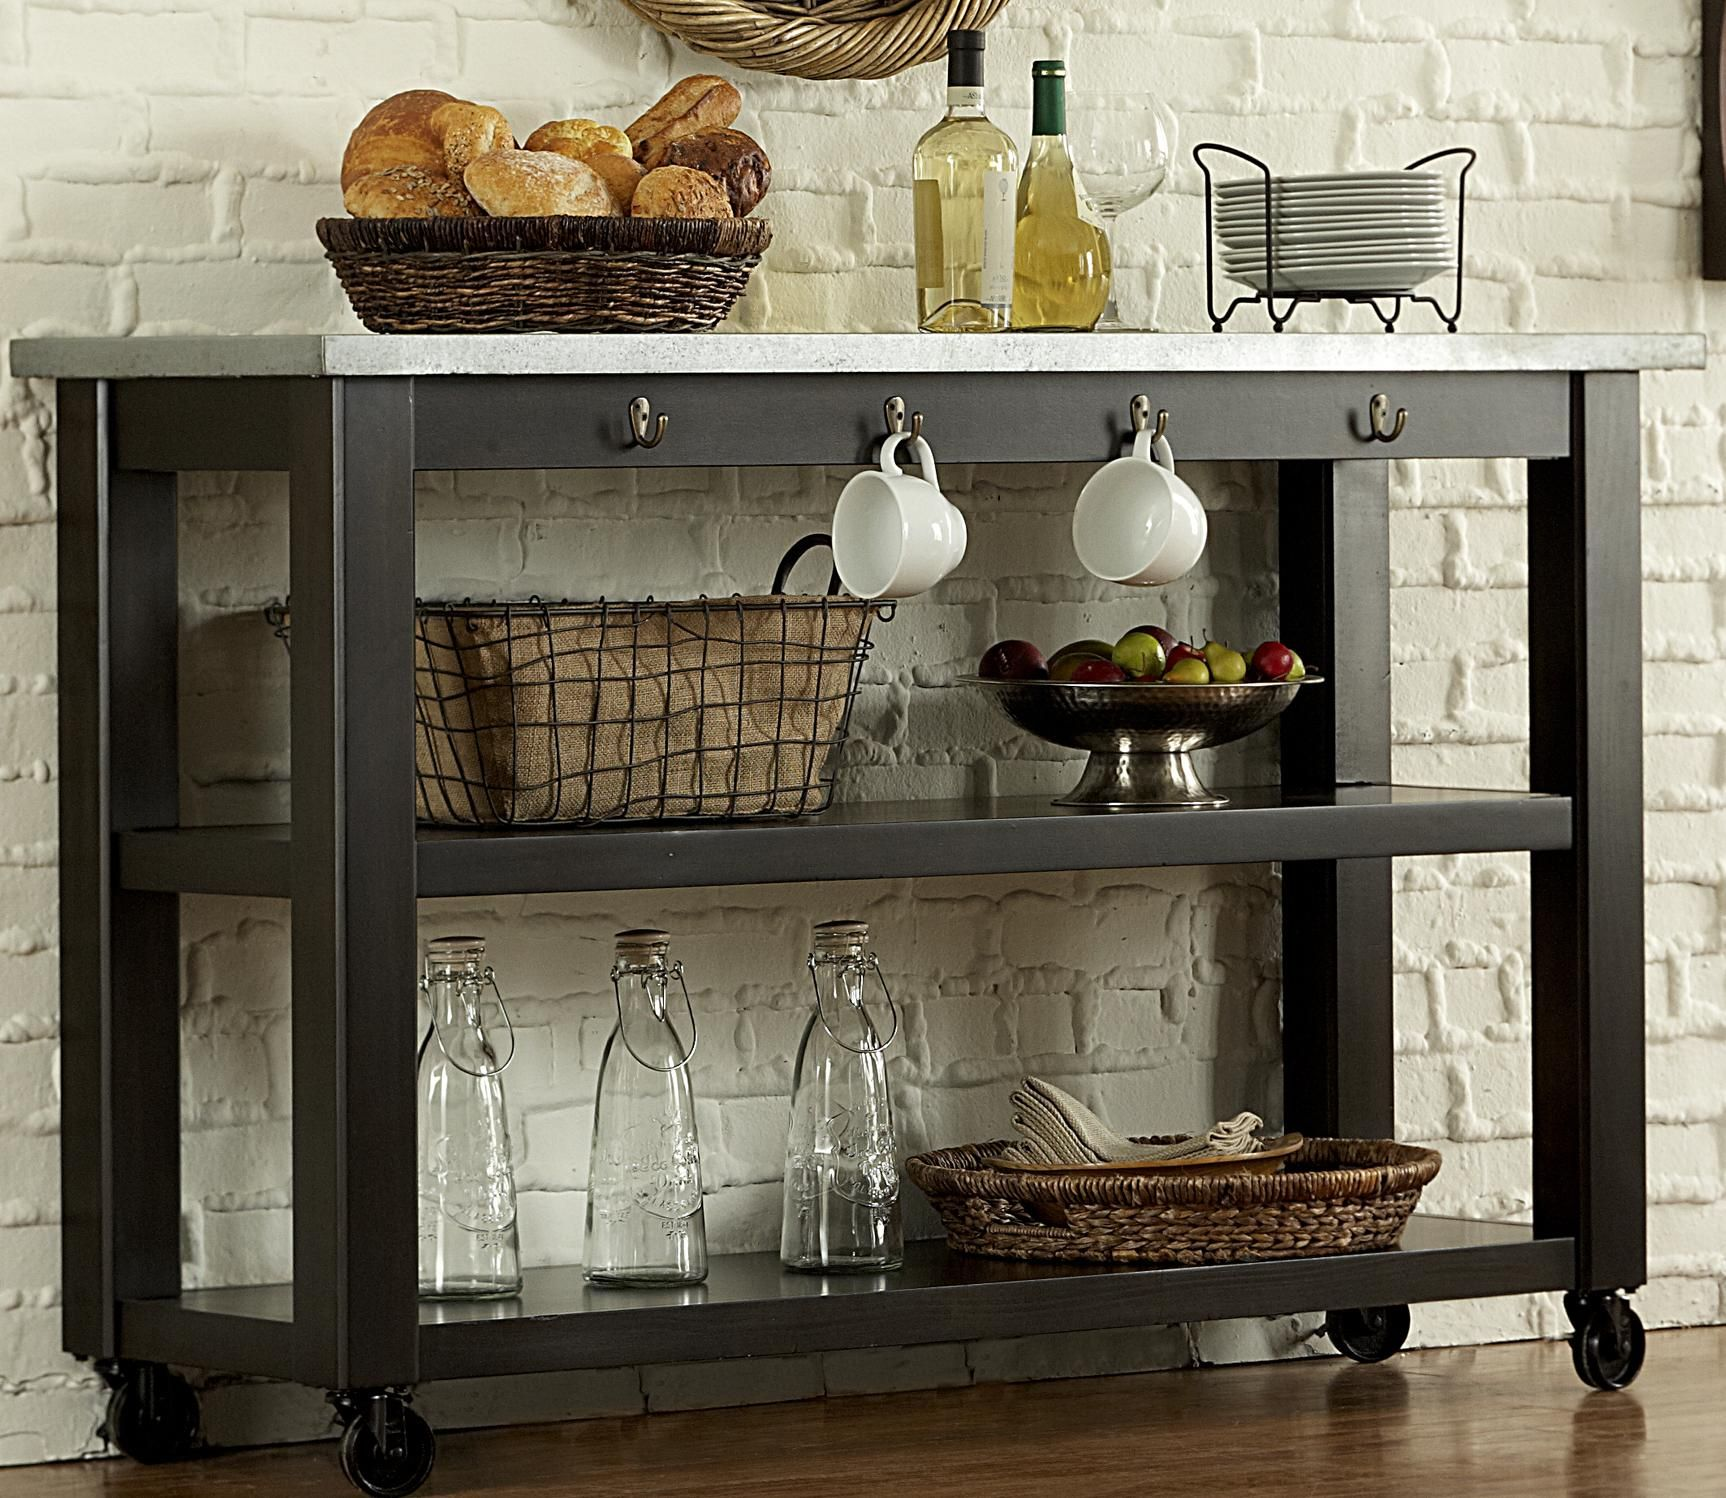 Keaton II Kitchen Serving Table on Casters by Vendor 5349 | Kitchens ...